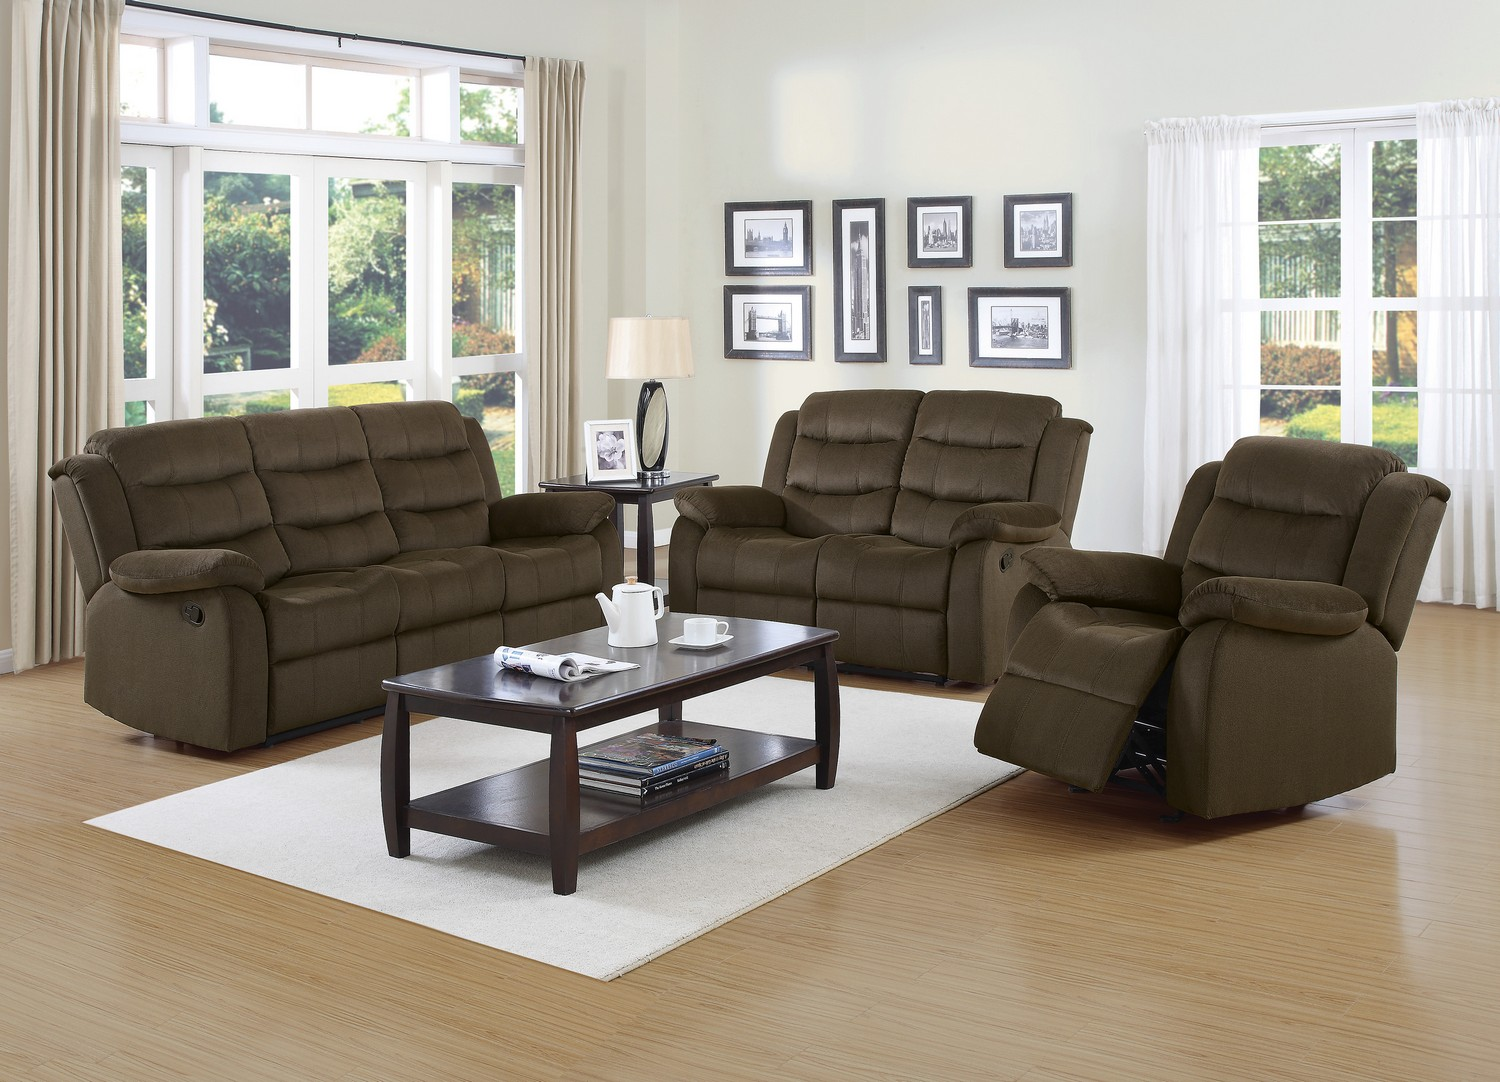 Coaster Rodman Reclining Sofa Set - Two-tone Chocolate